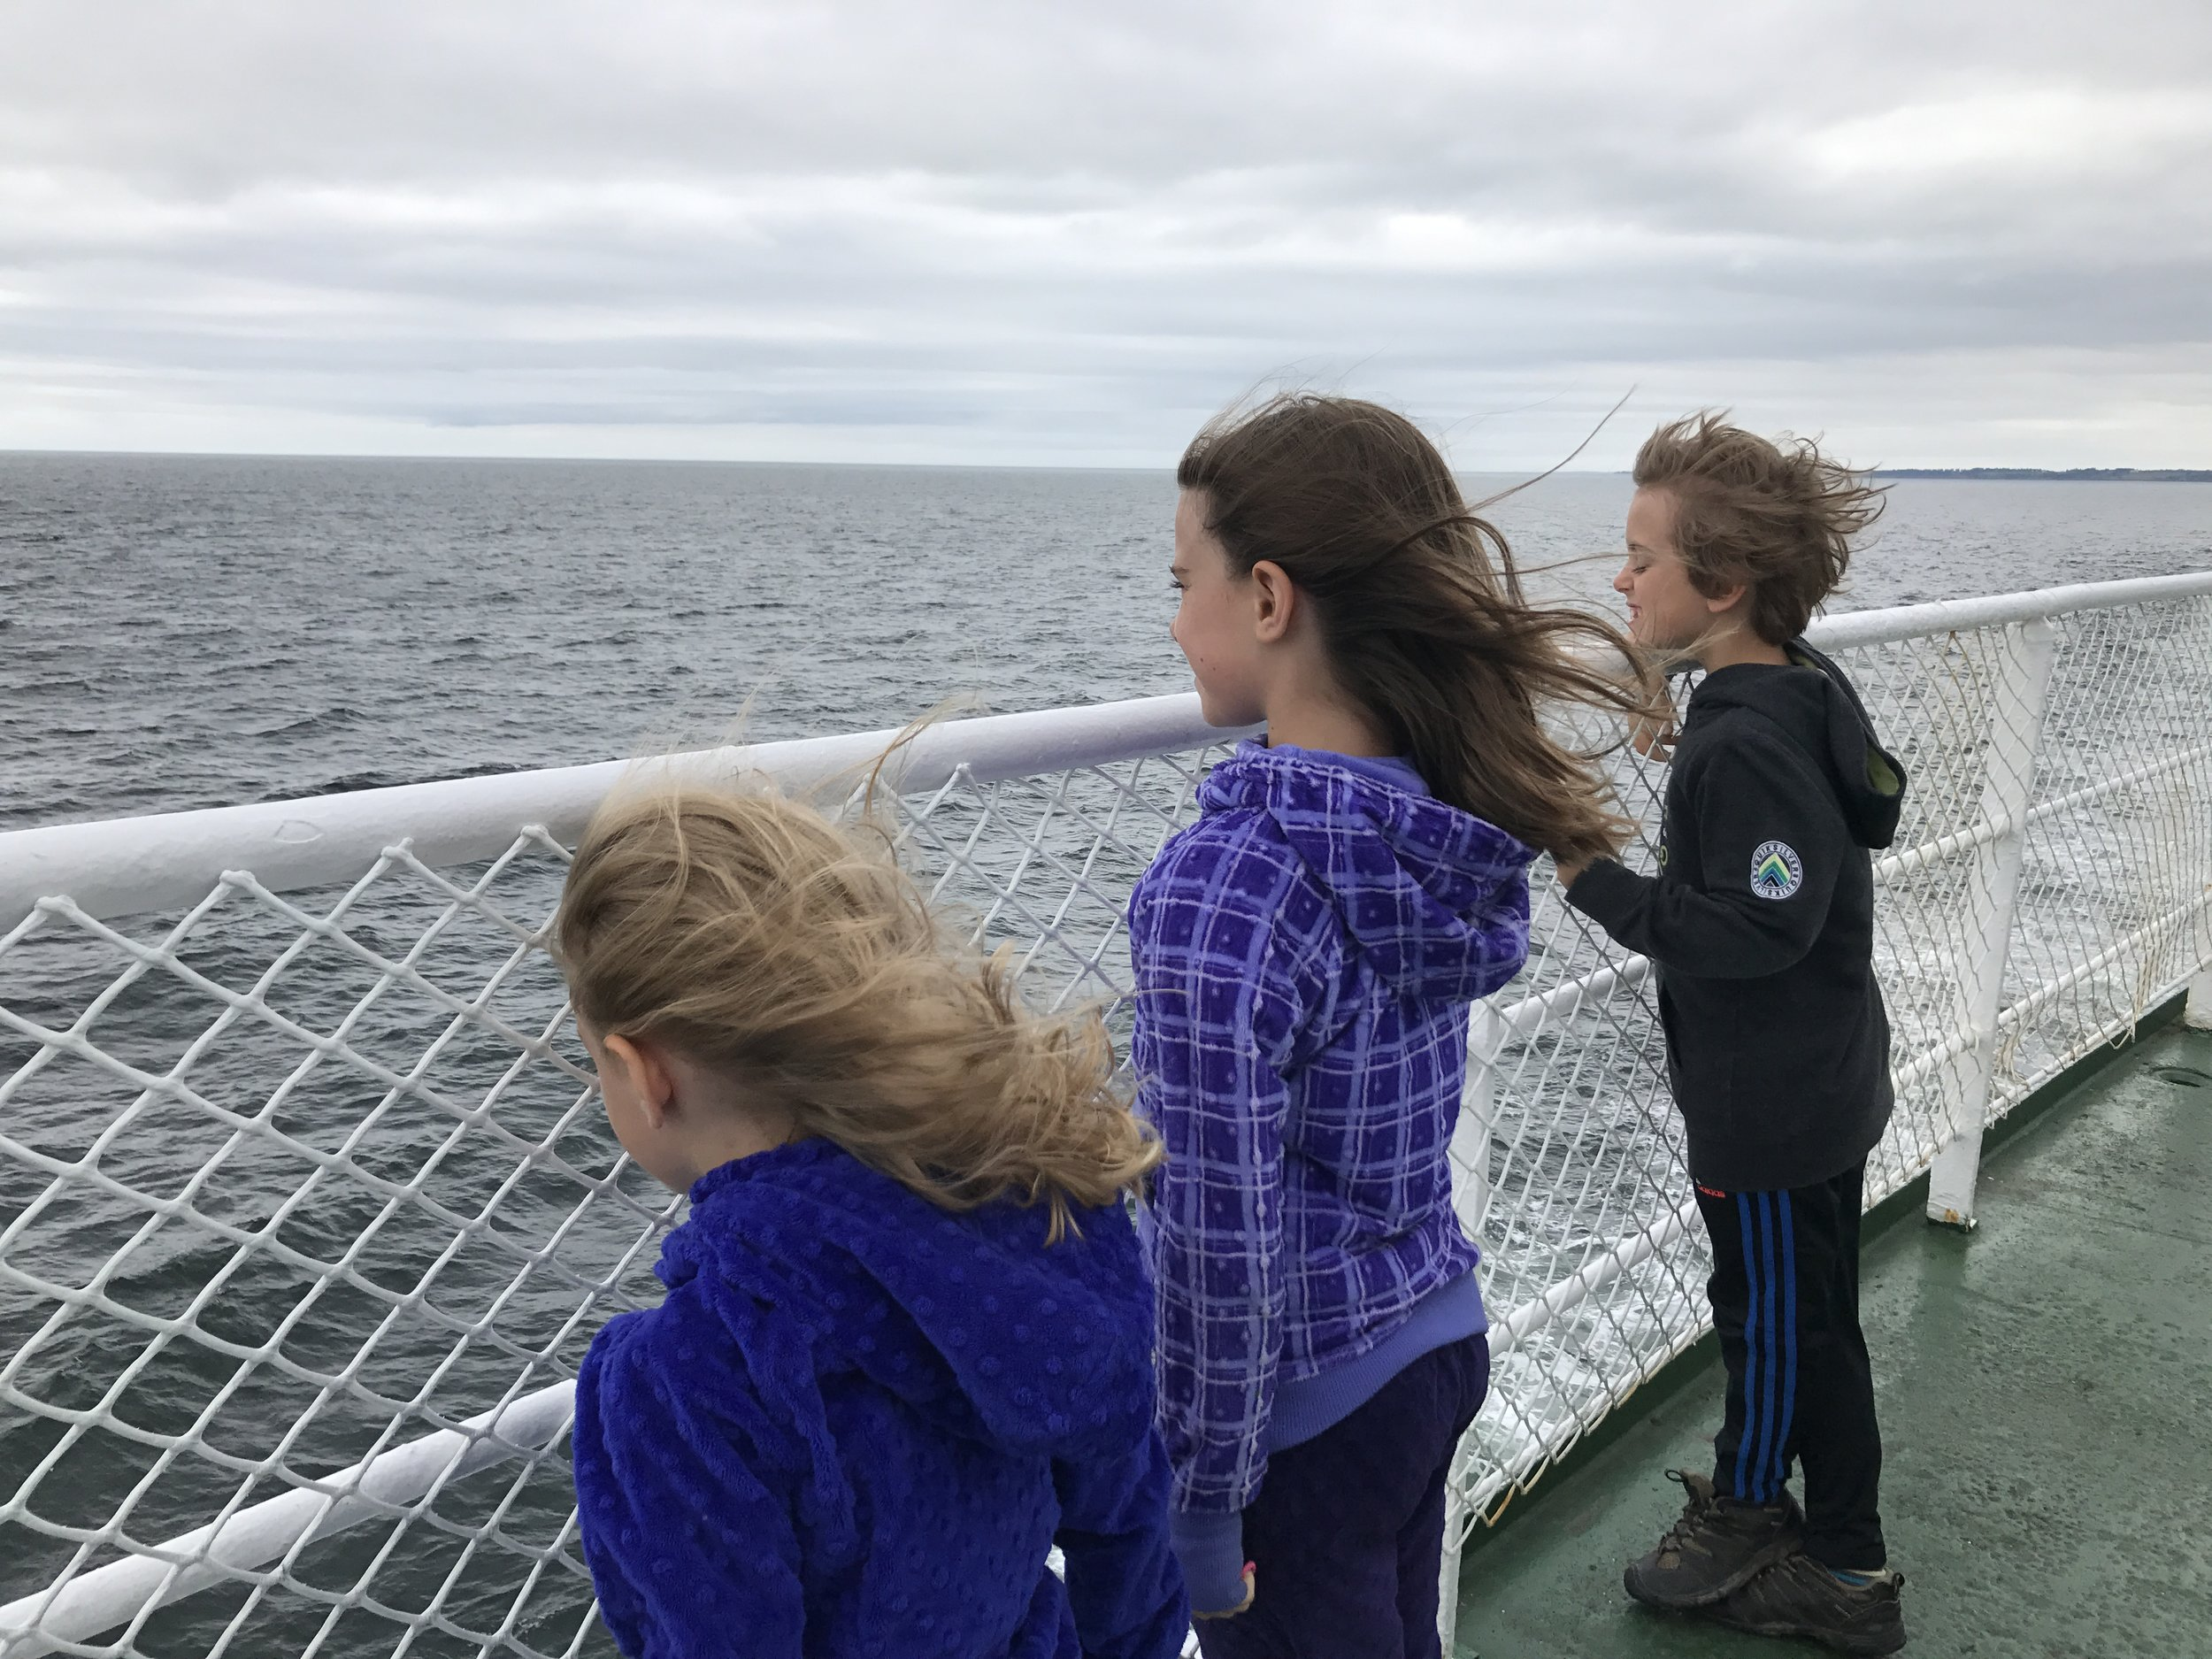 Looking for Nova Scotia's mainland on the ferry from PEI.